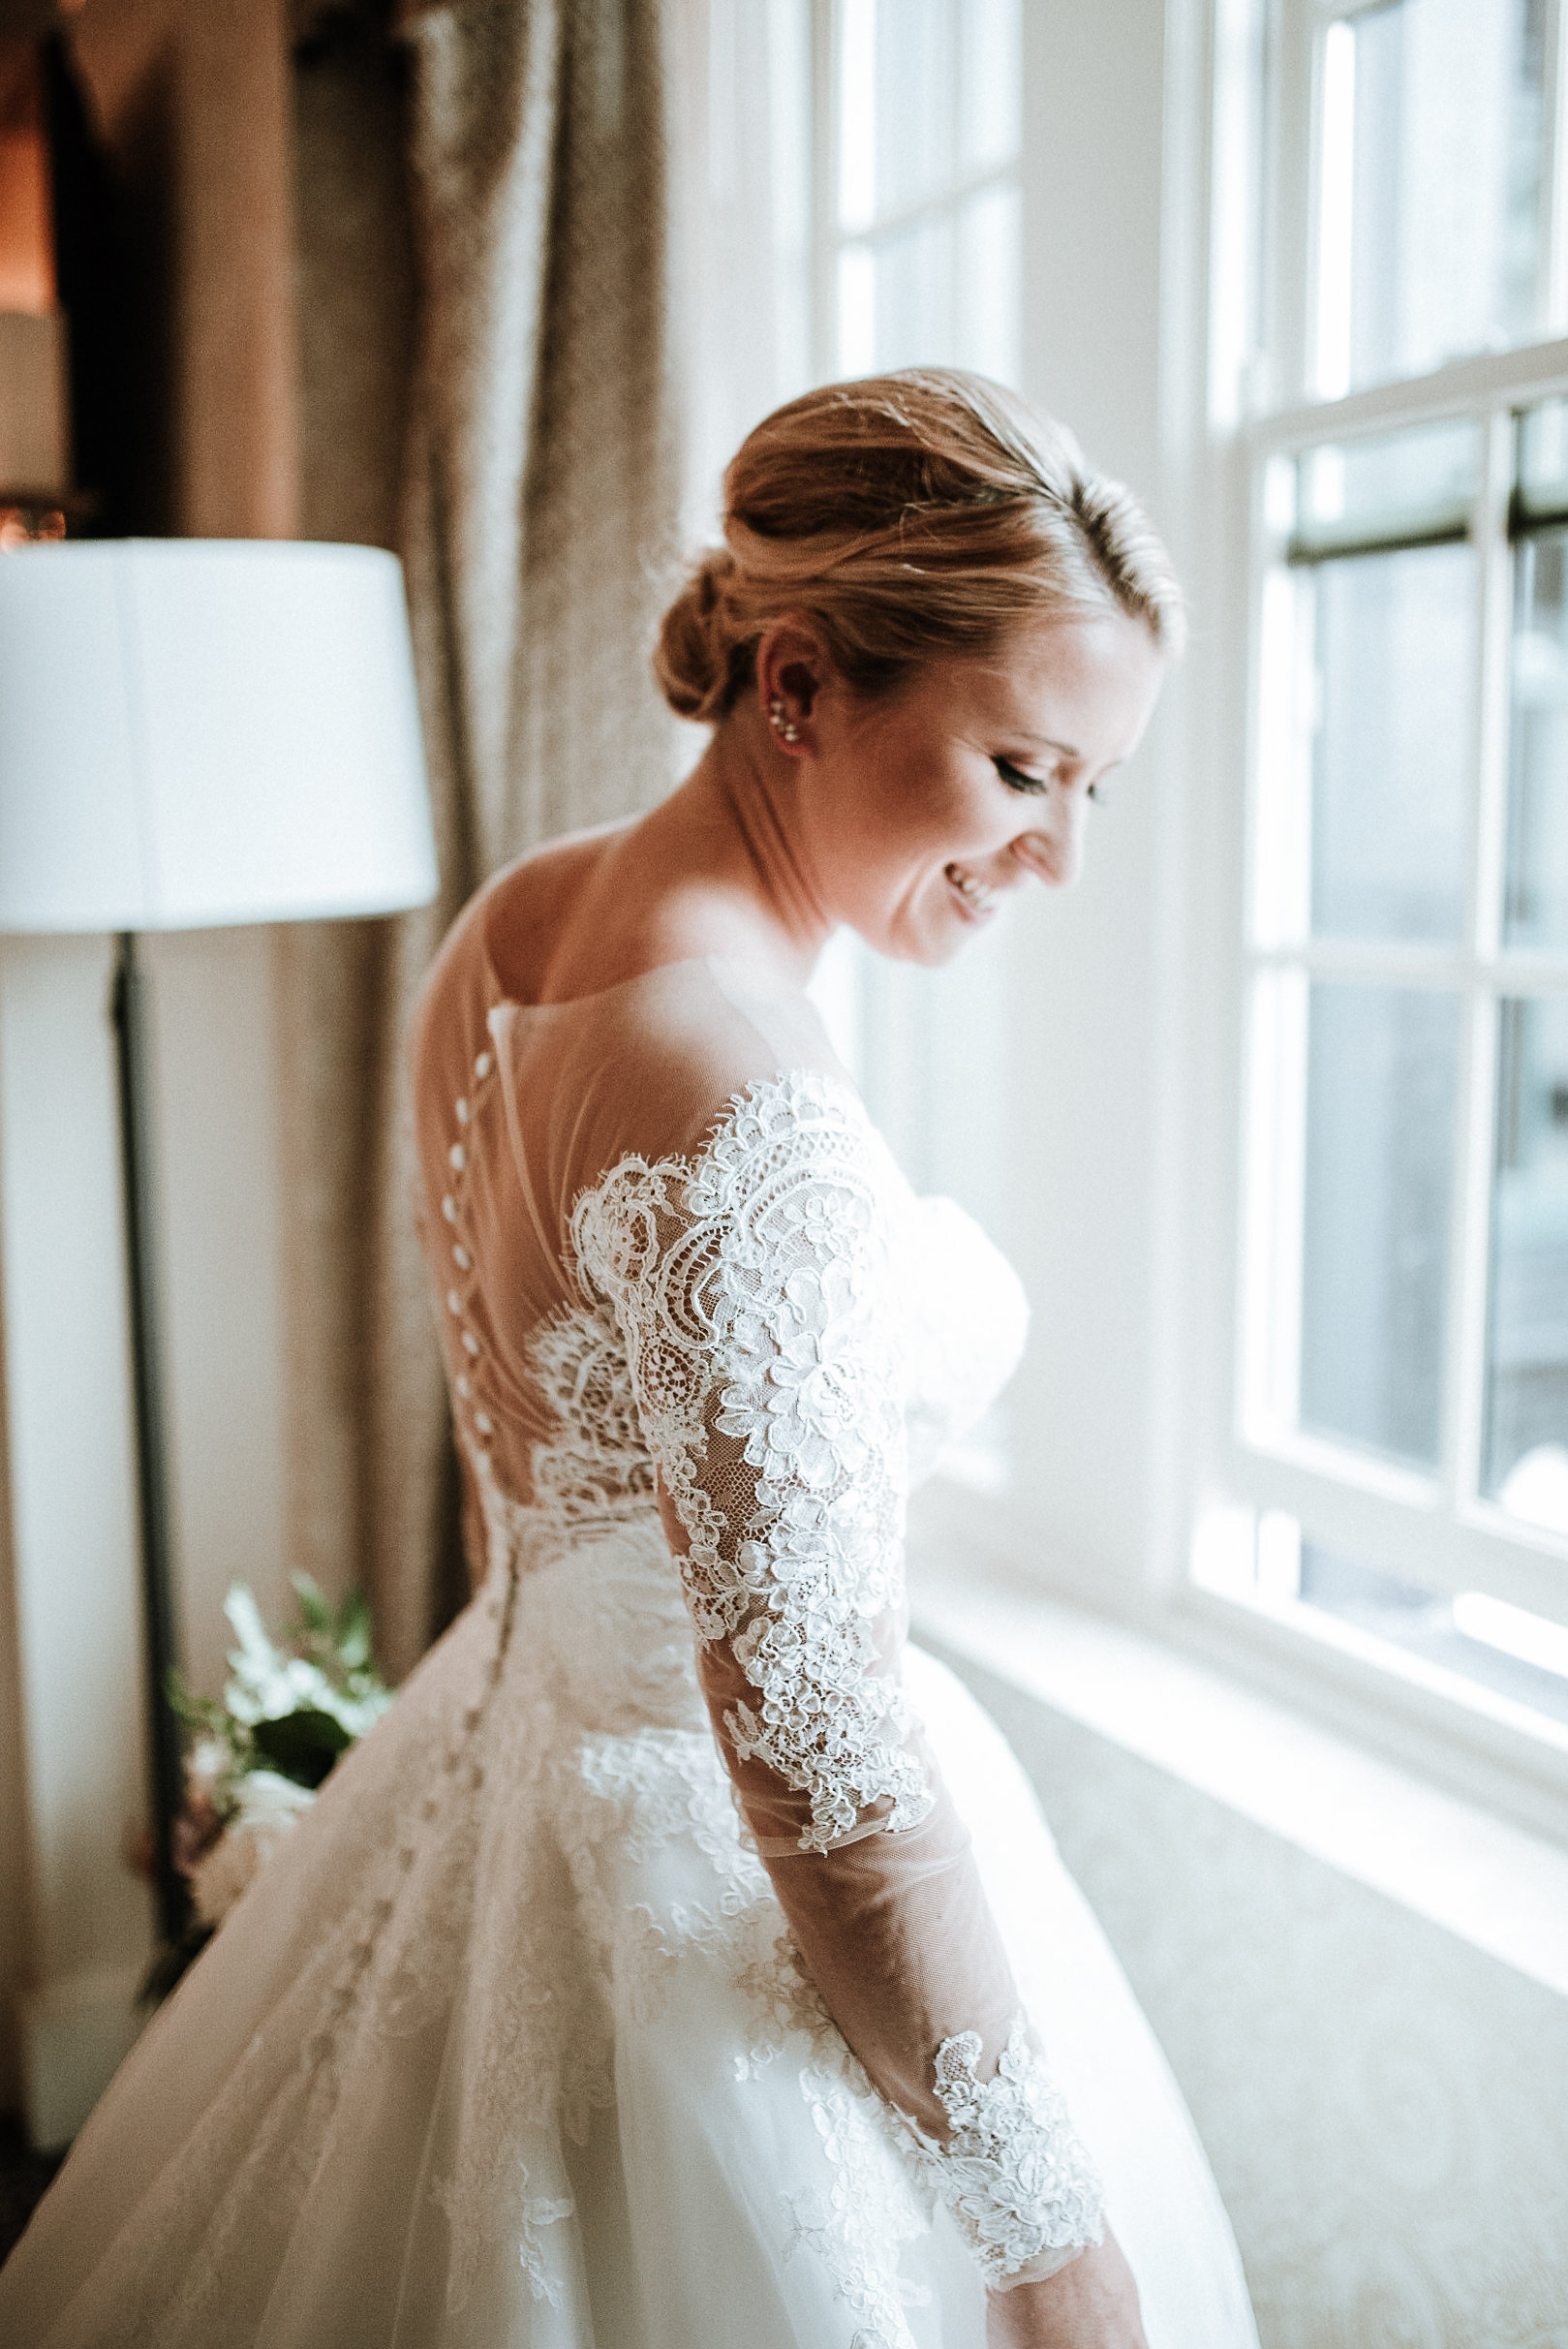 Bride smiling at window